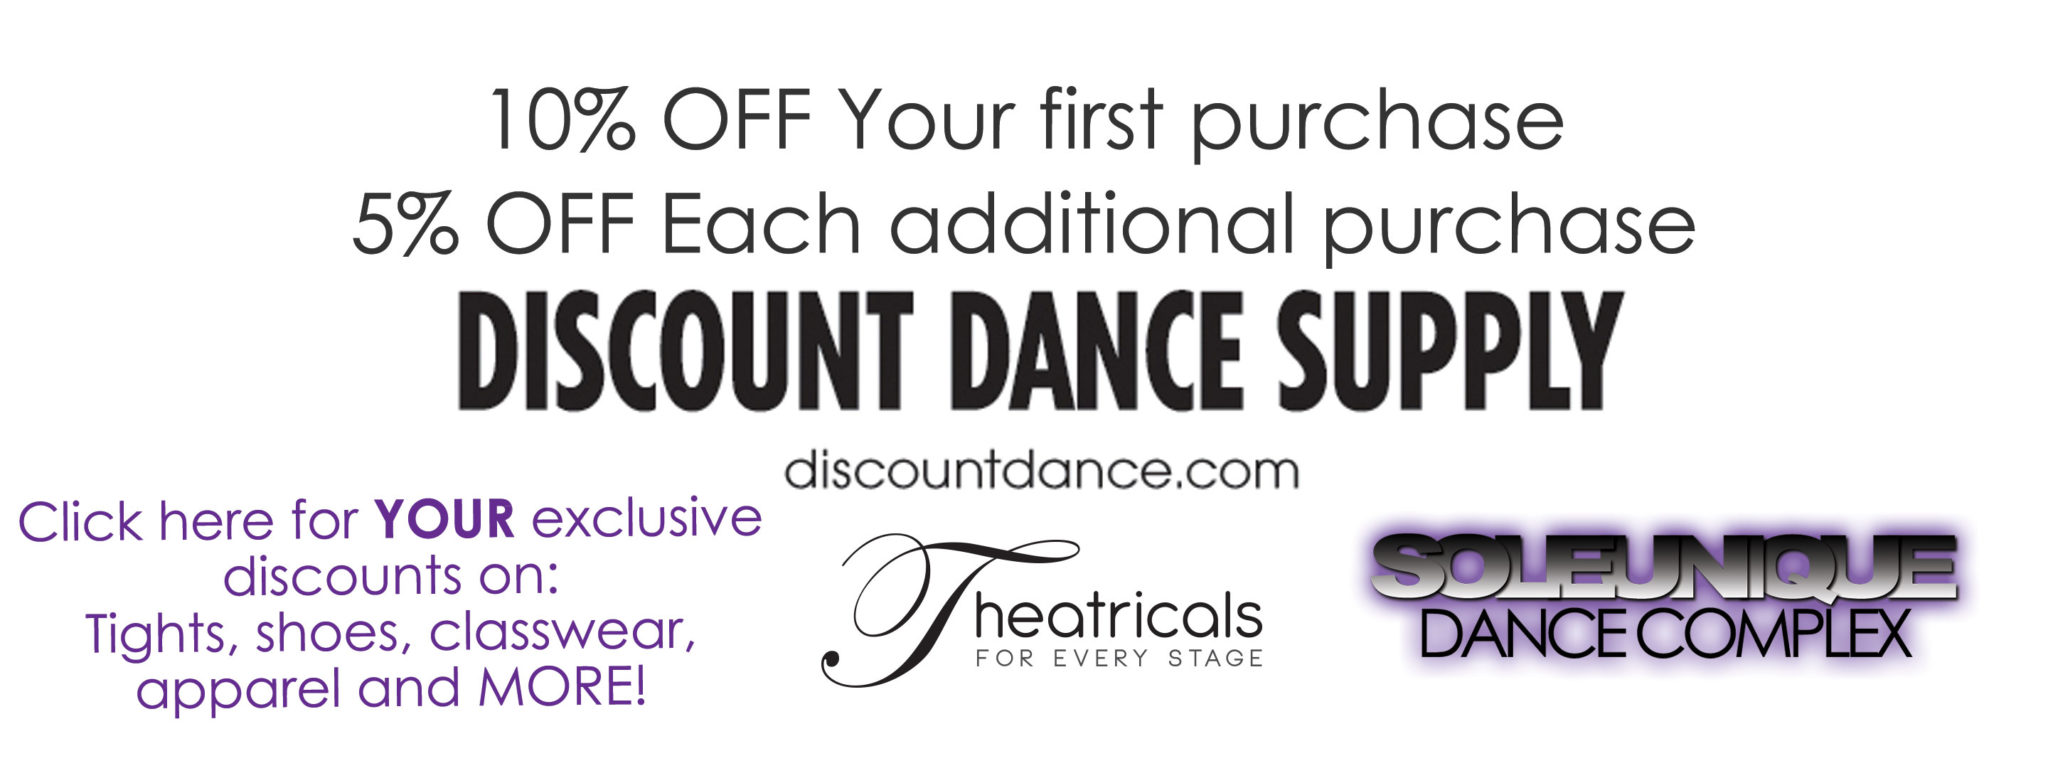 disountdance_discount